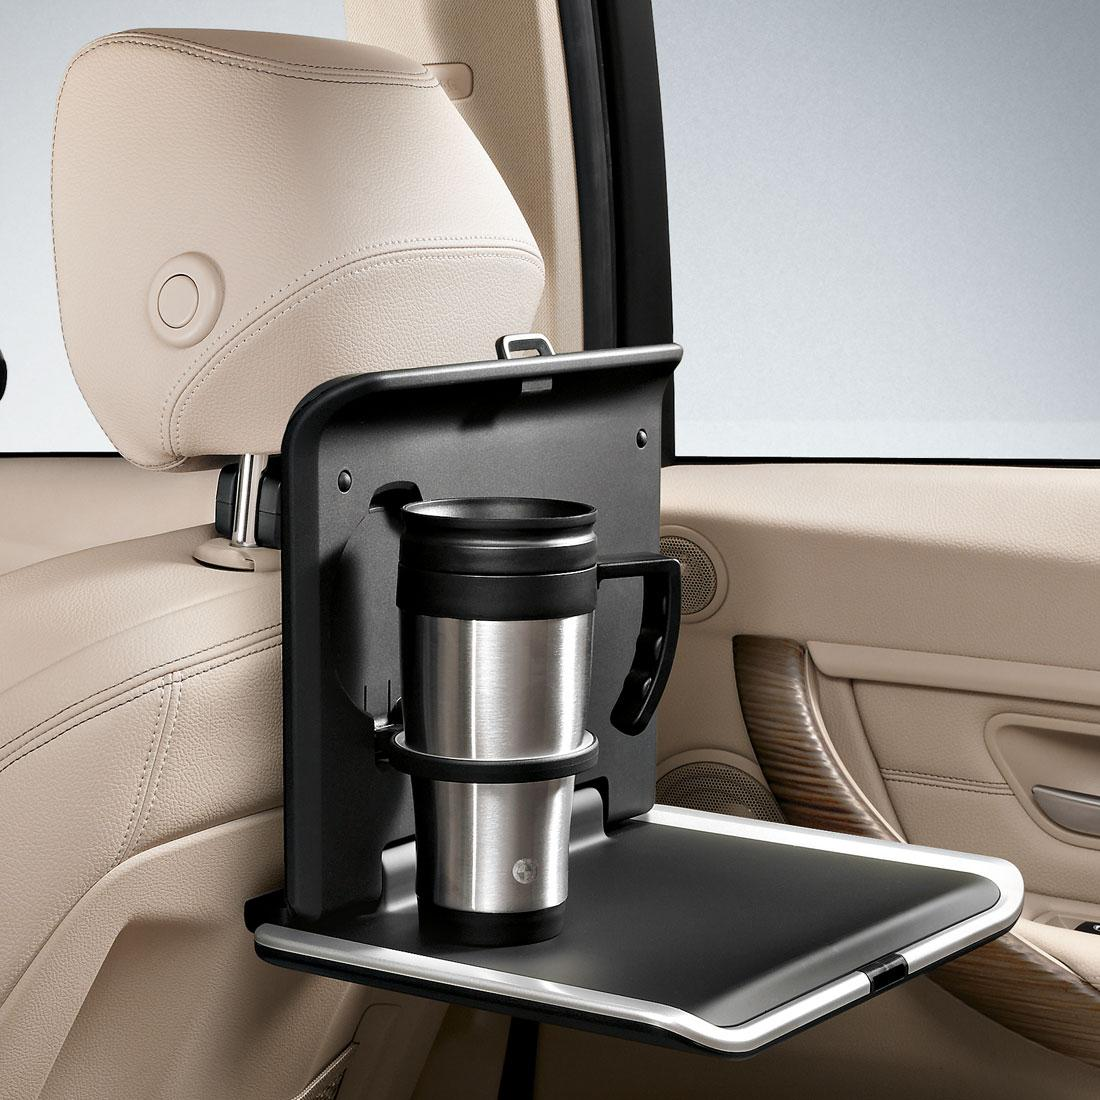 ShopBMWUSA.com: BMW TRAVEL AND COMFORT SYSTEM FOLDING TABLE